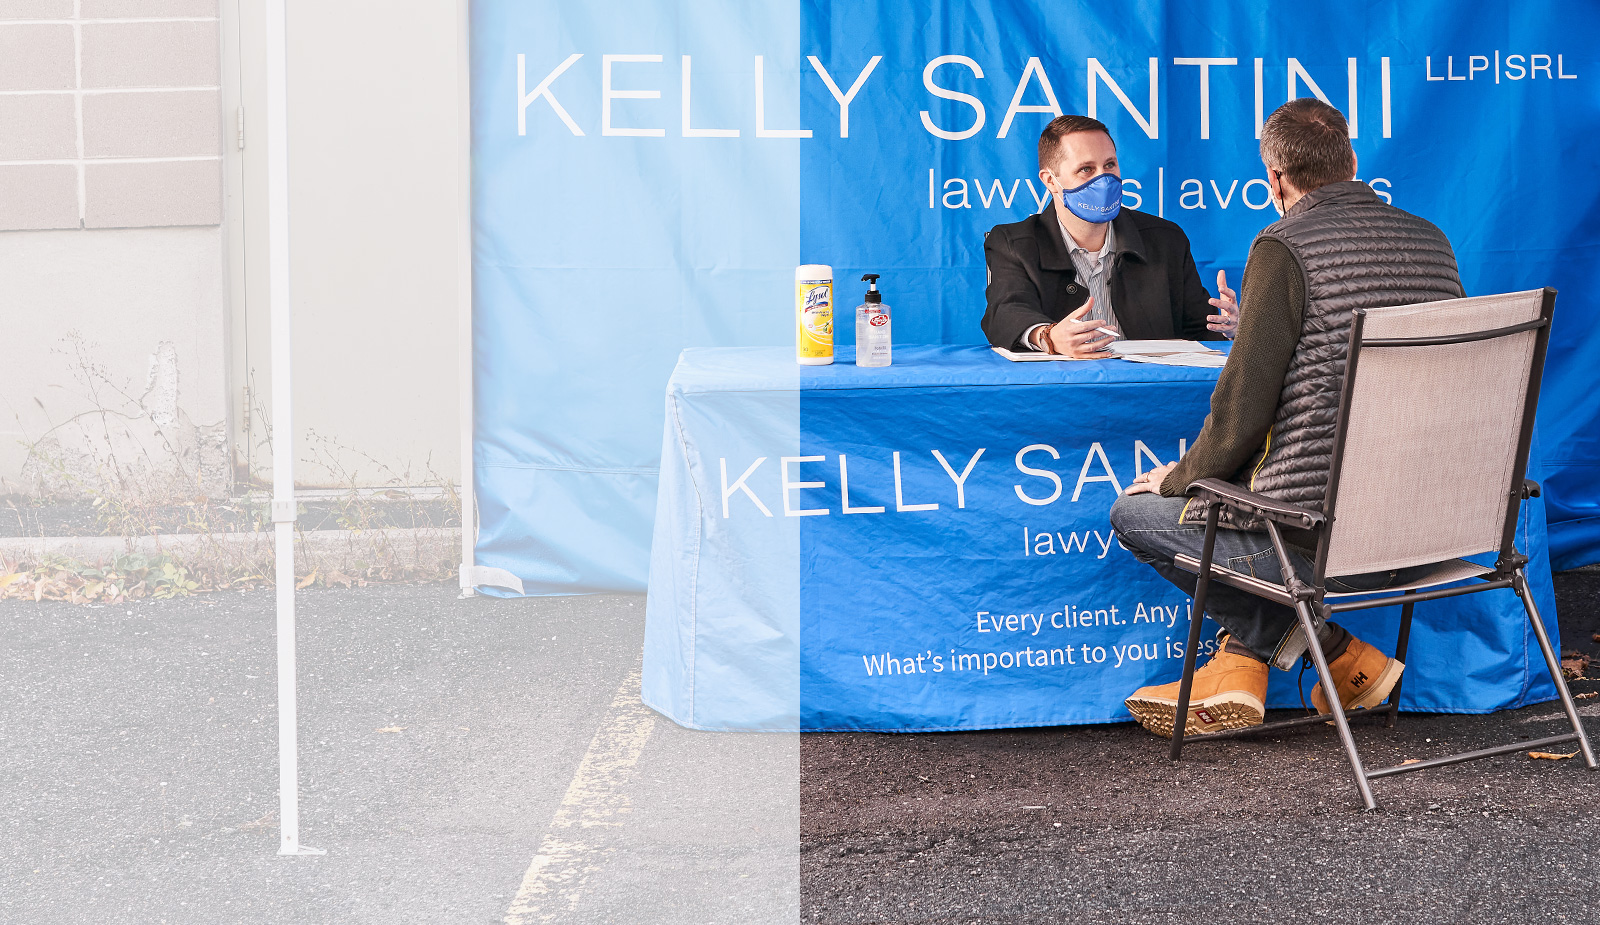 Lawyer Zachary Gaulin serves a client at Kelly Santini's drive in service on Carling Ave, Ottawa.